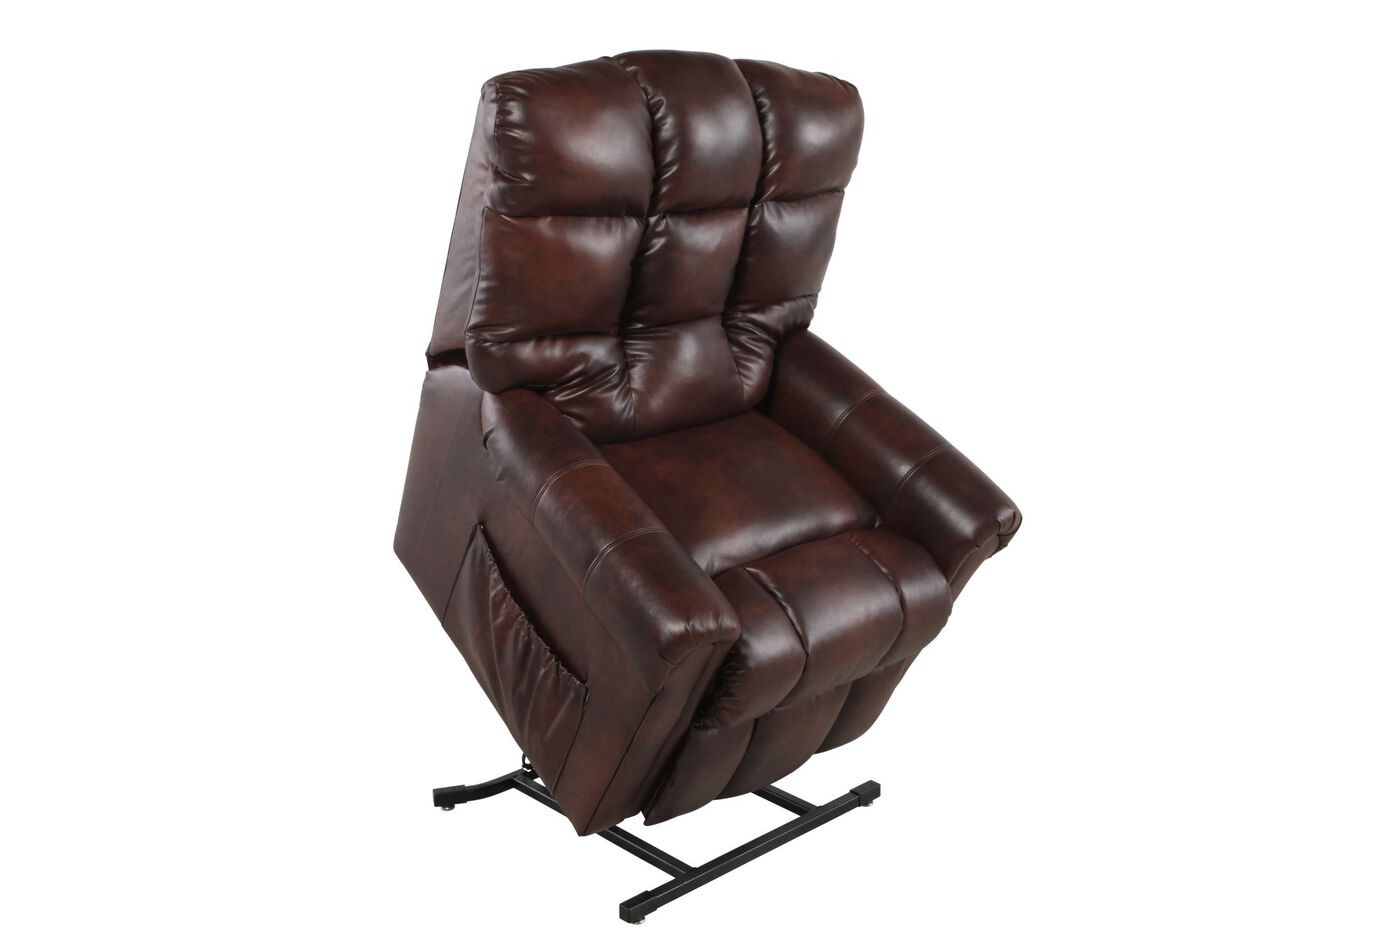 on reupholstery where the sale does me size pay covers lift near buy recliner picture gravity can chairs stair cheap cost electric chair unique jk suppliers awesome automatic billing medicare home seat of cover scooters full medical i for zero address my mechanism laboratory